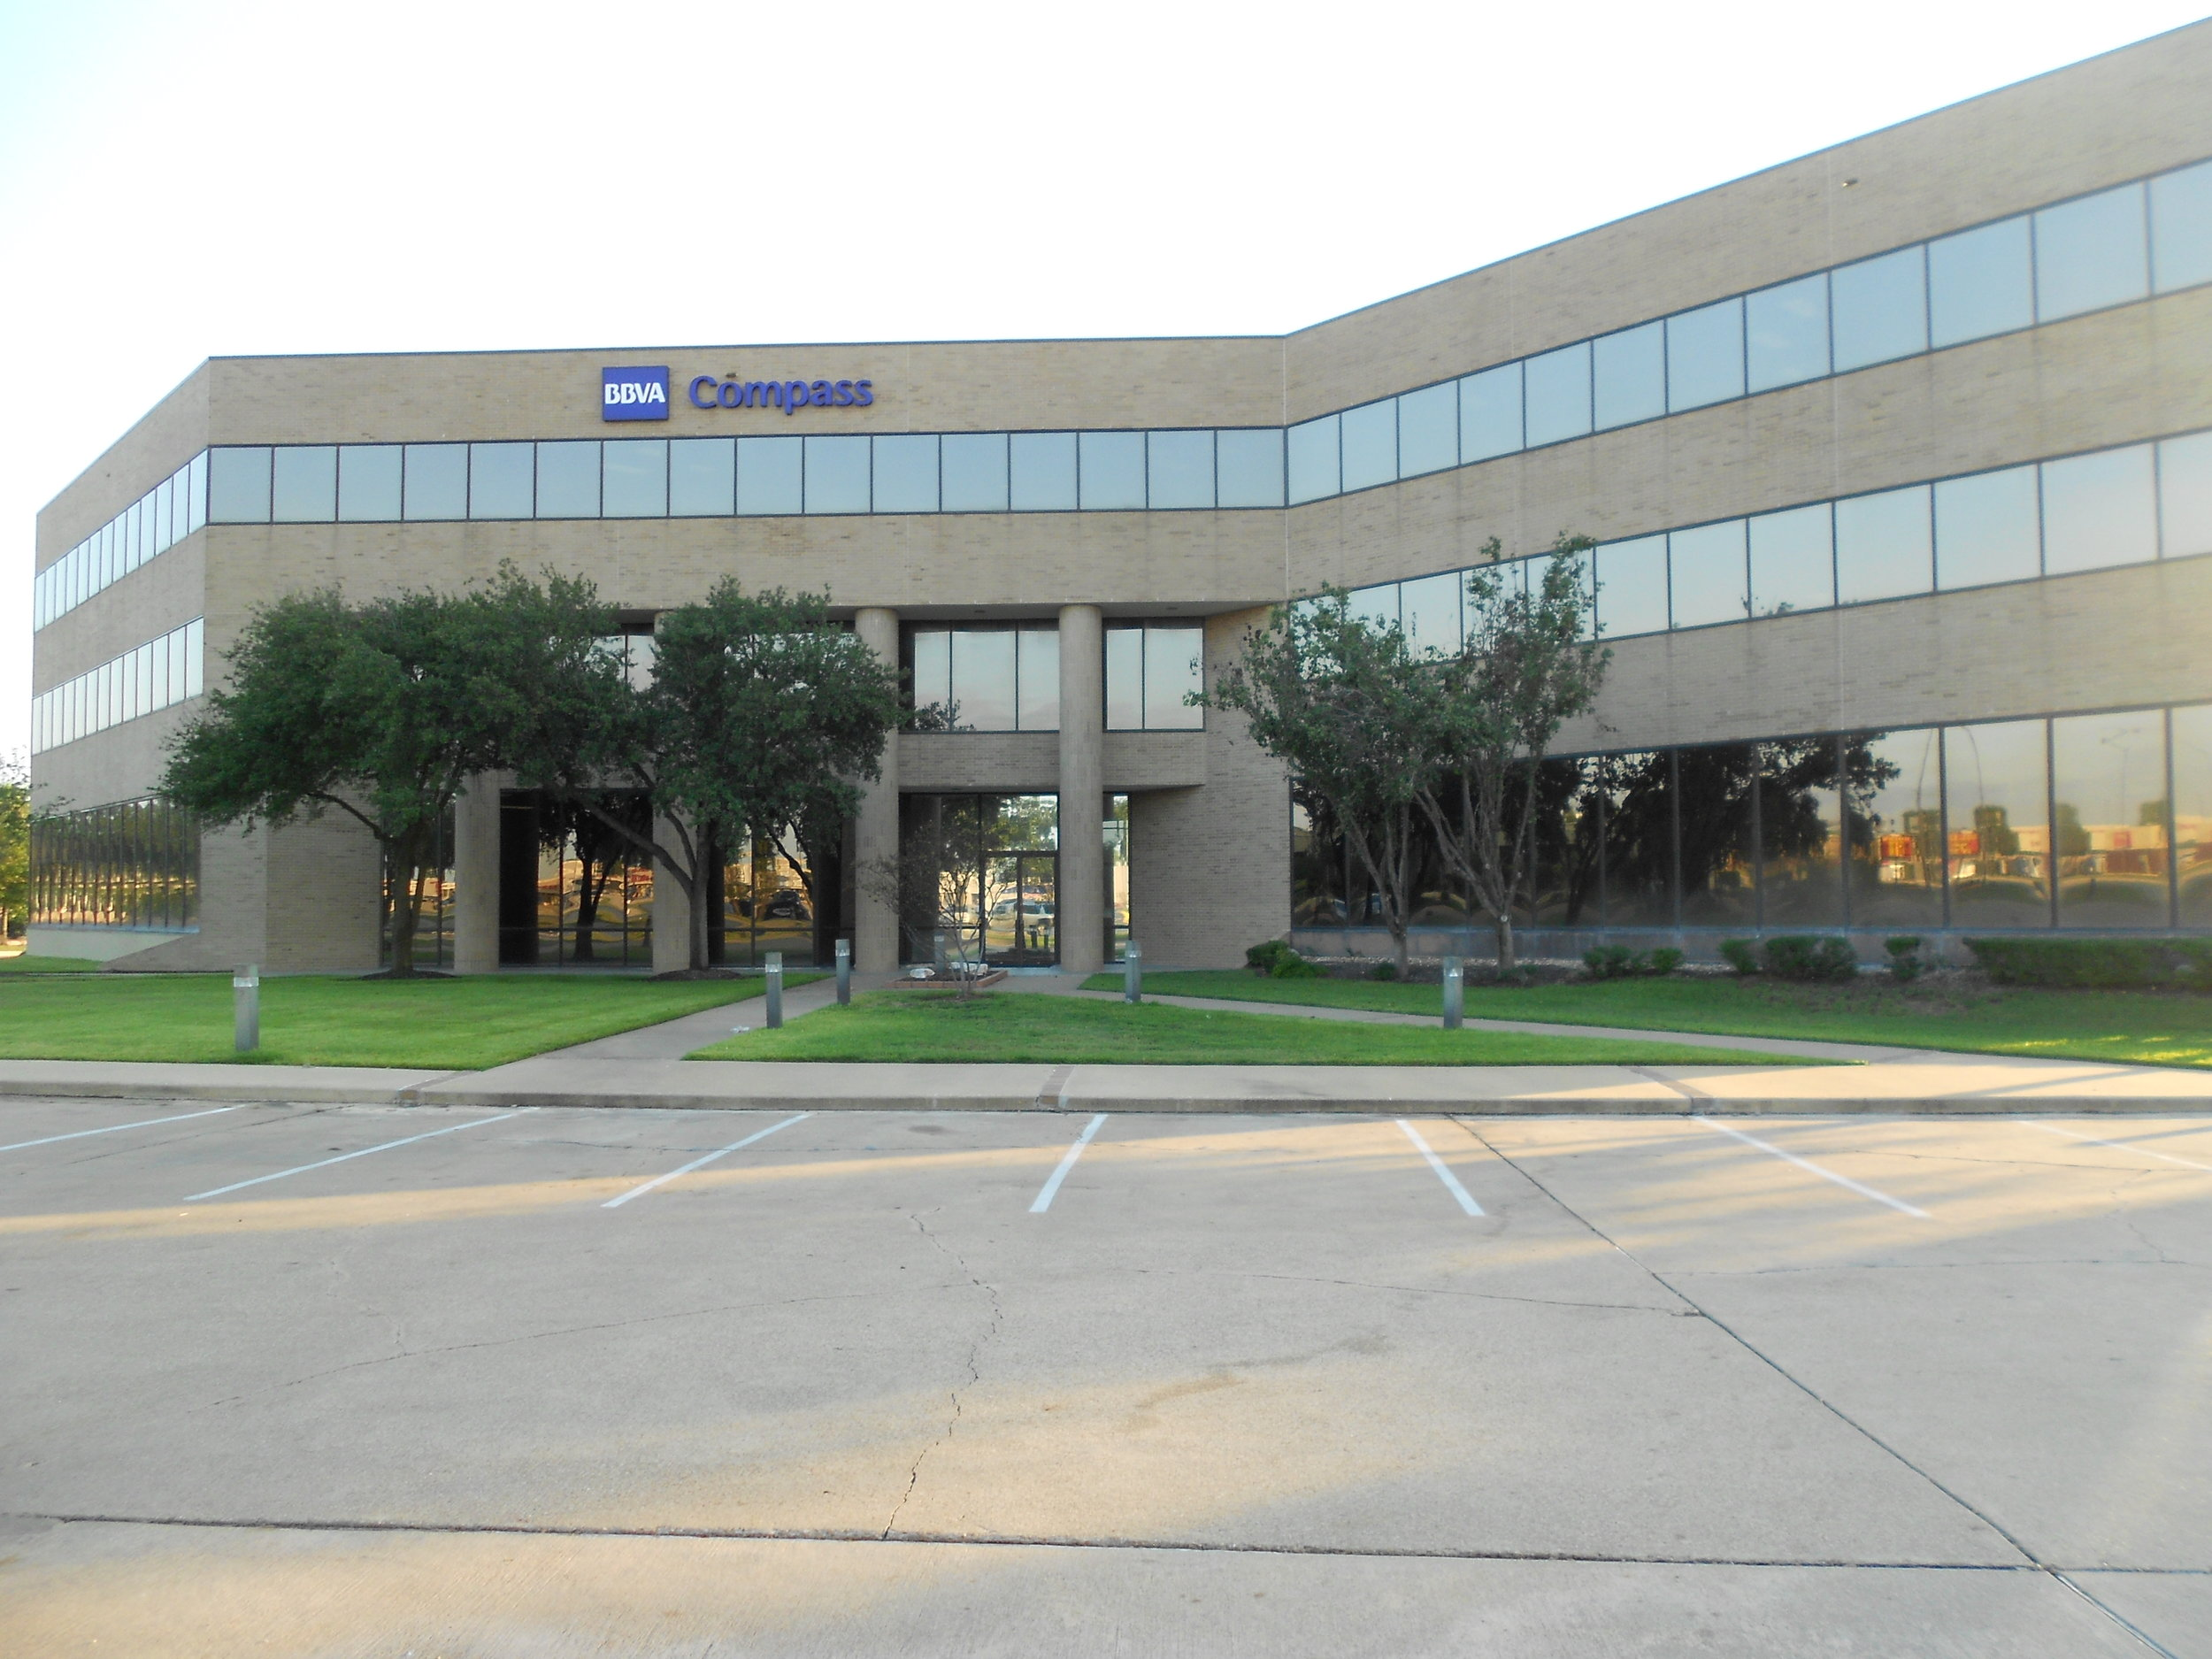 Compass Bank Building   2405 S TEXAS AVE. cOLLEGE STATION, TX 77840